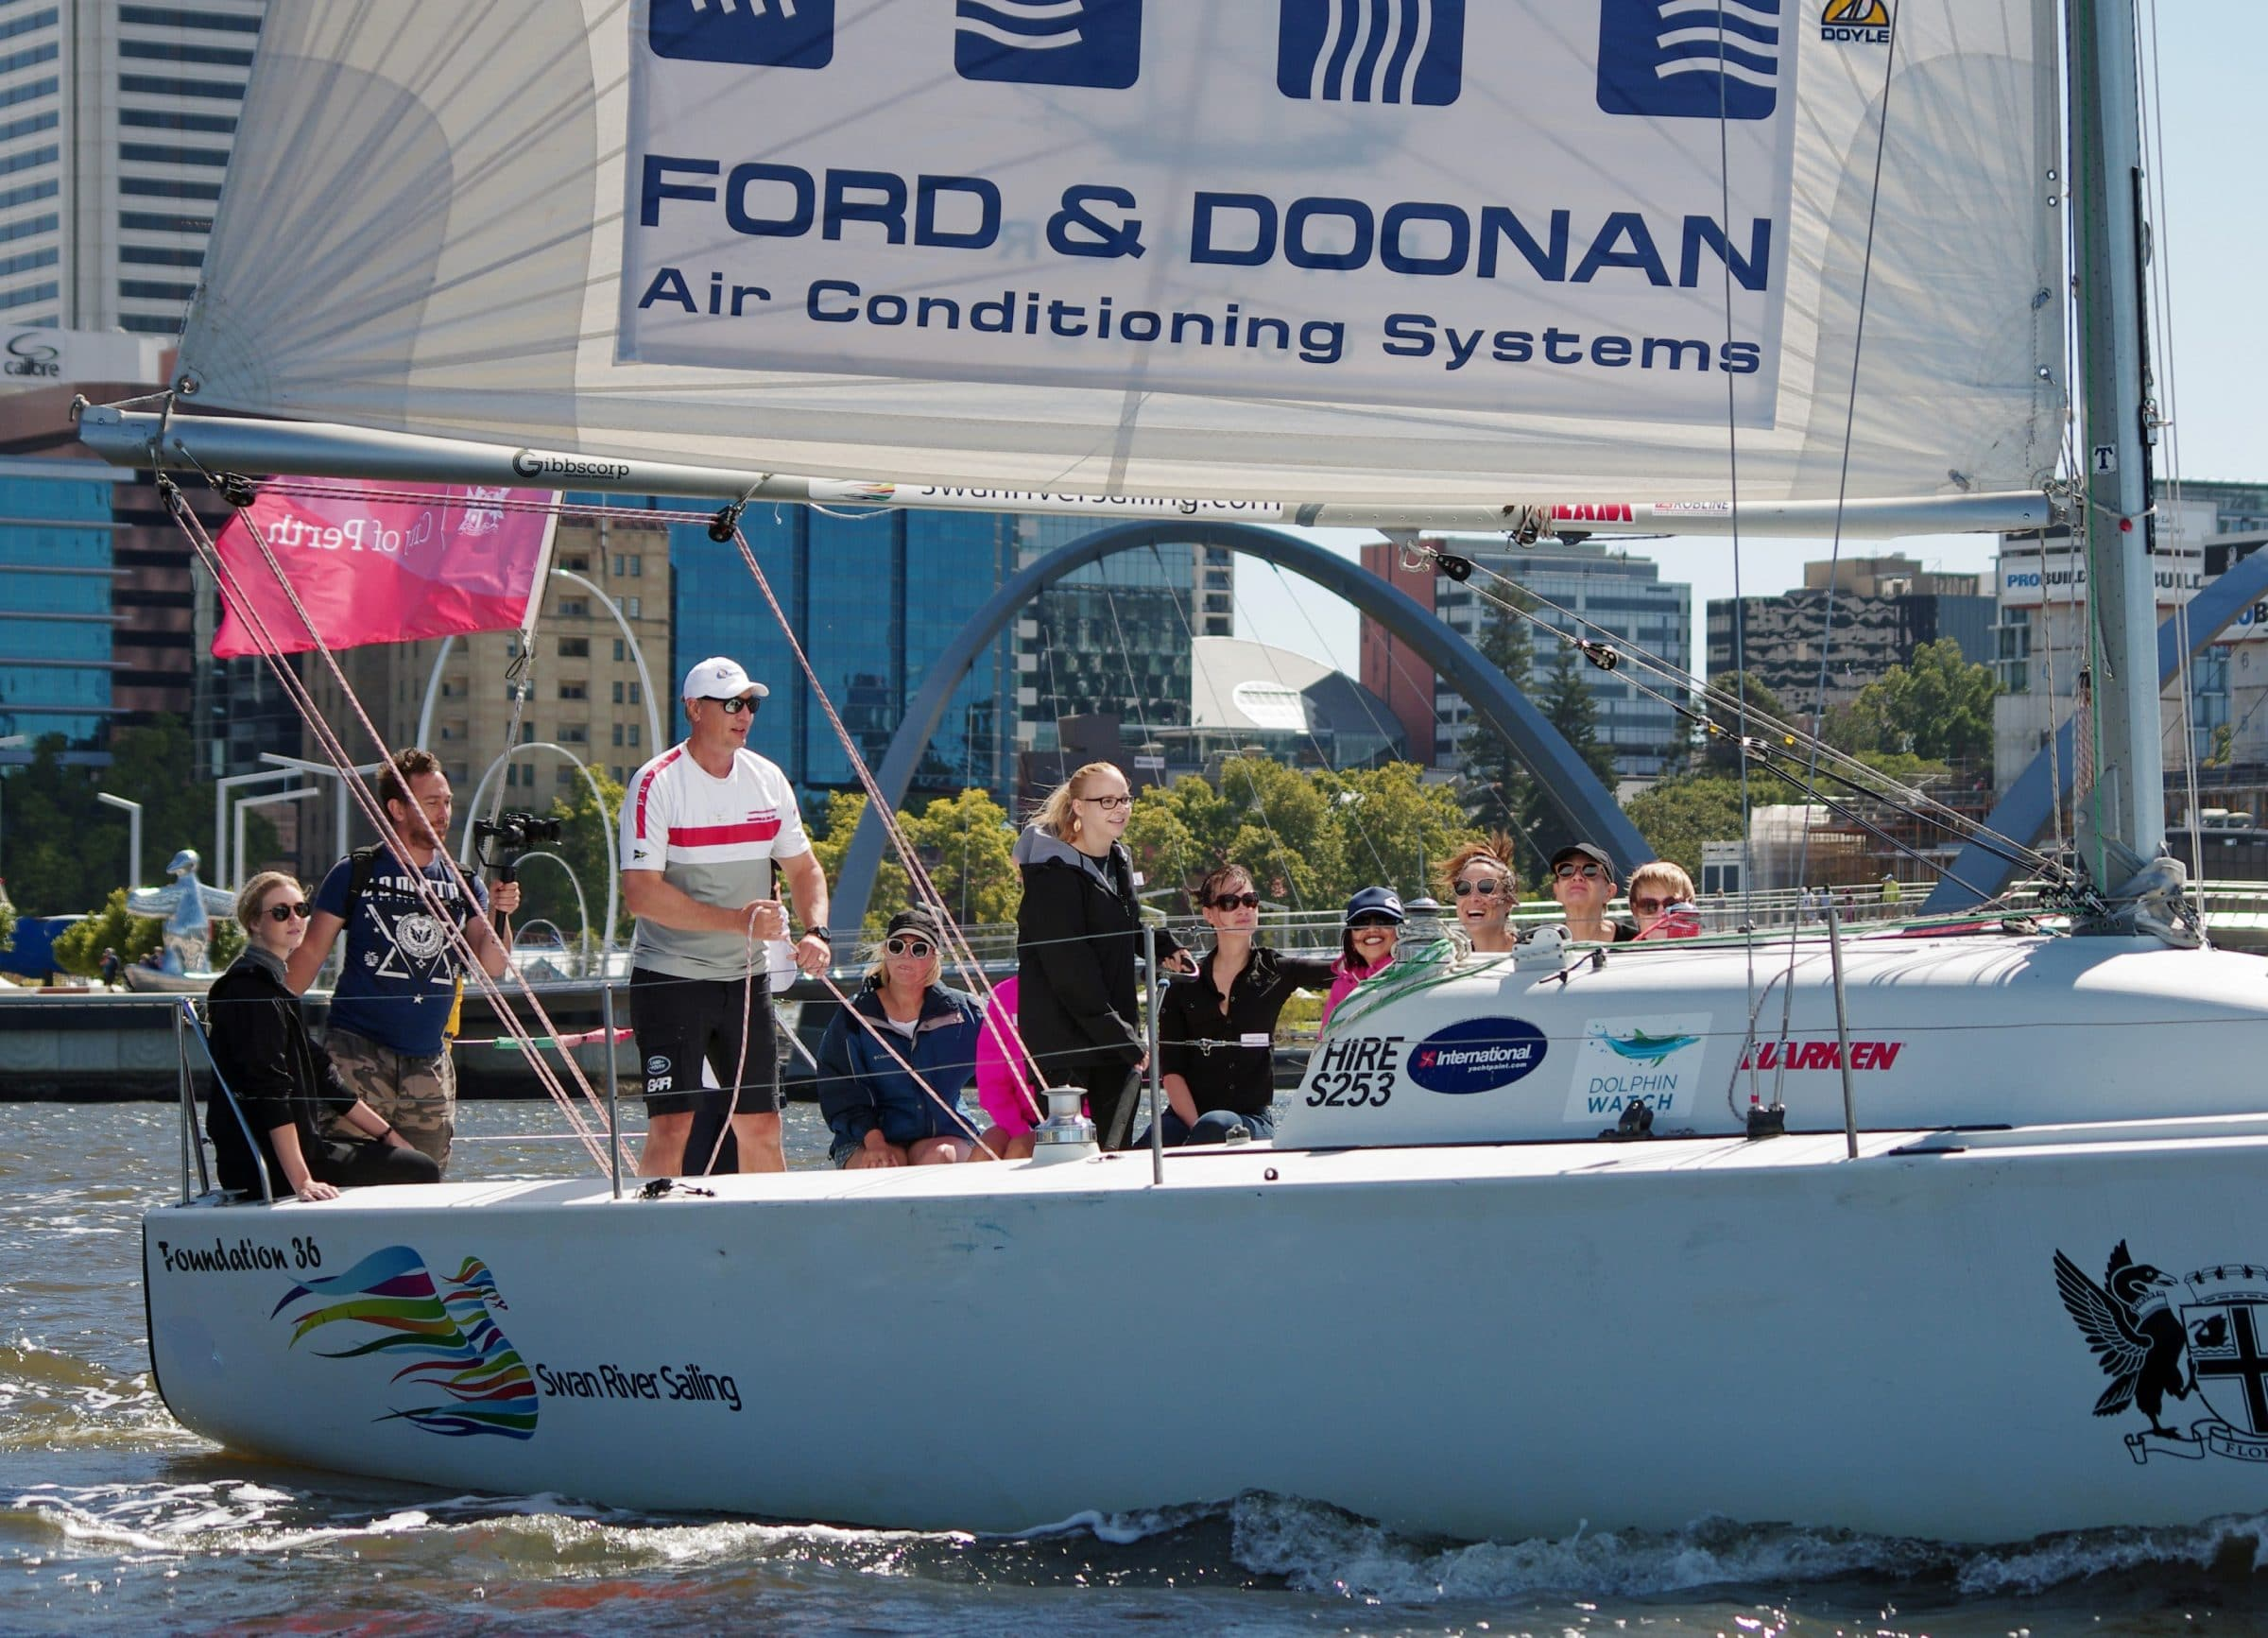 Kids and Adults discovering sailing at the Perth International Boat Show